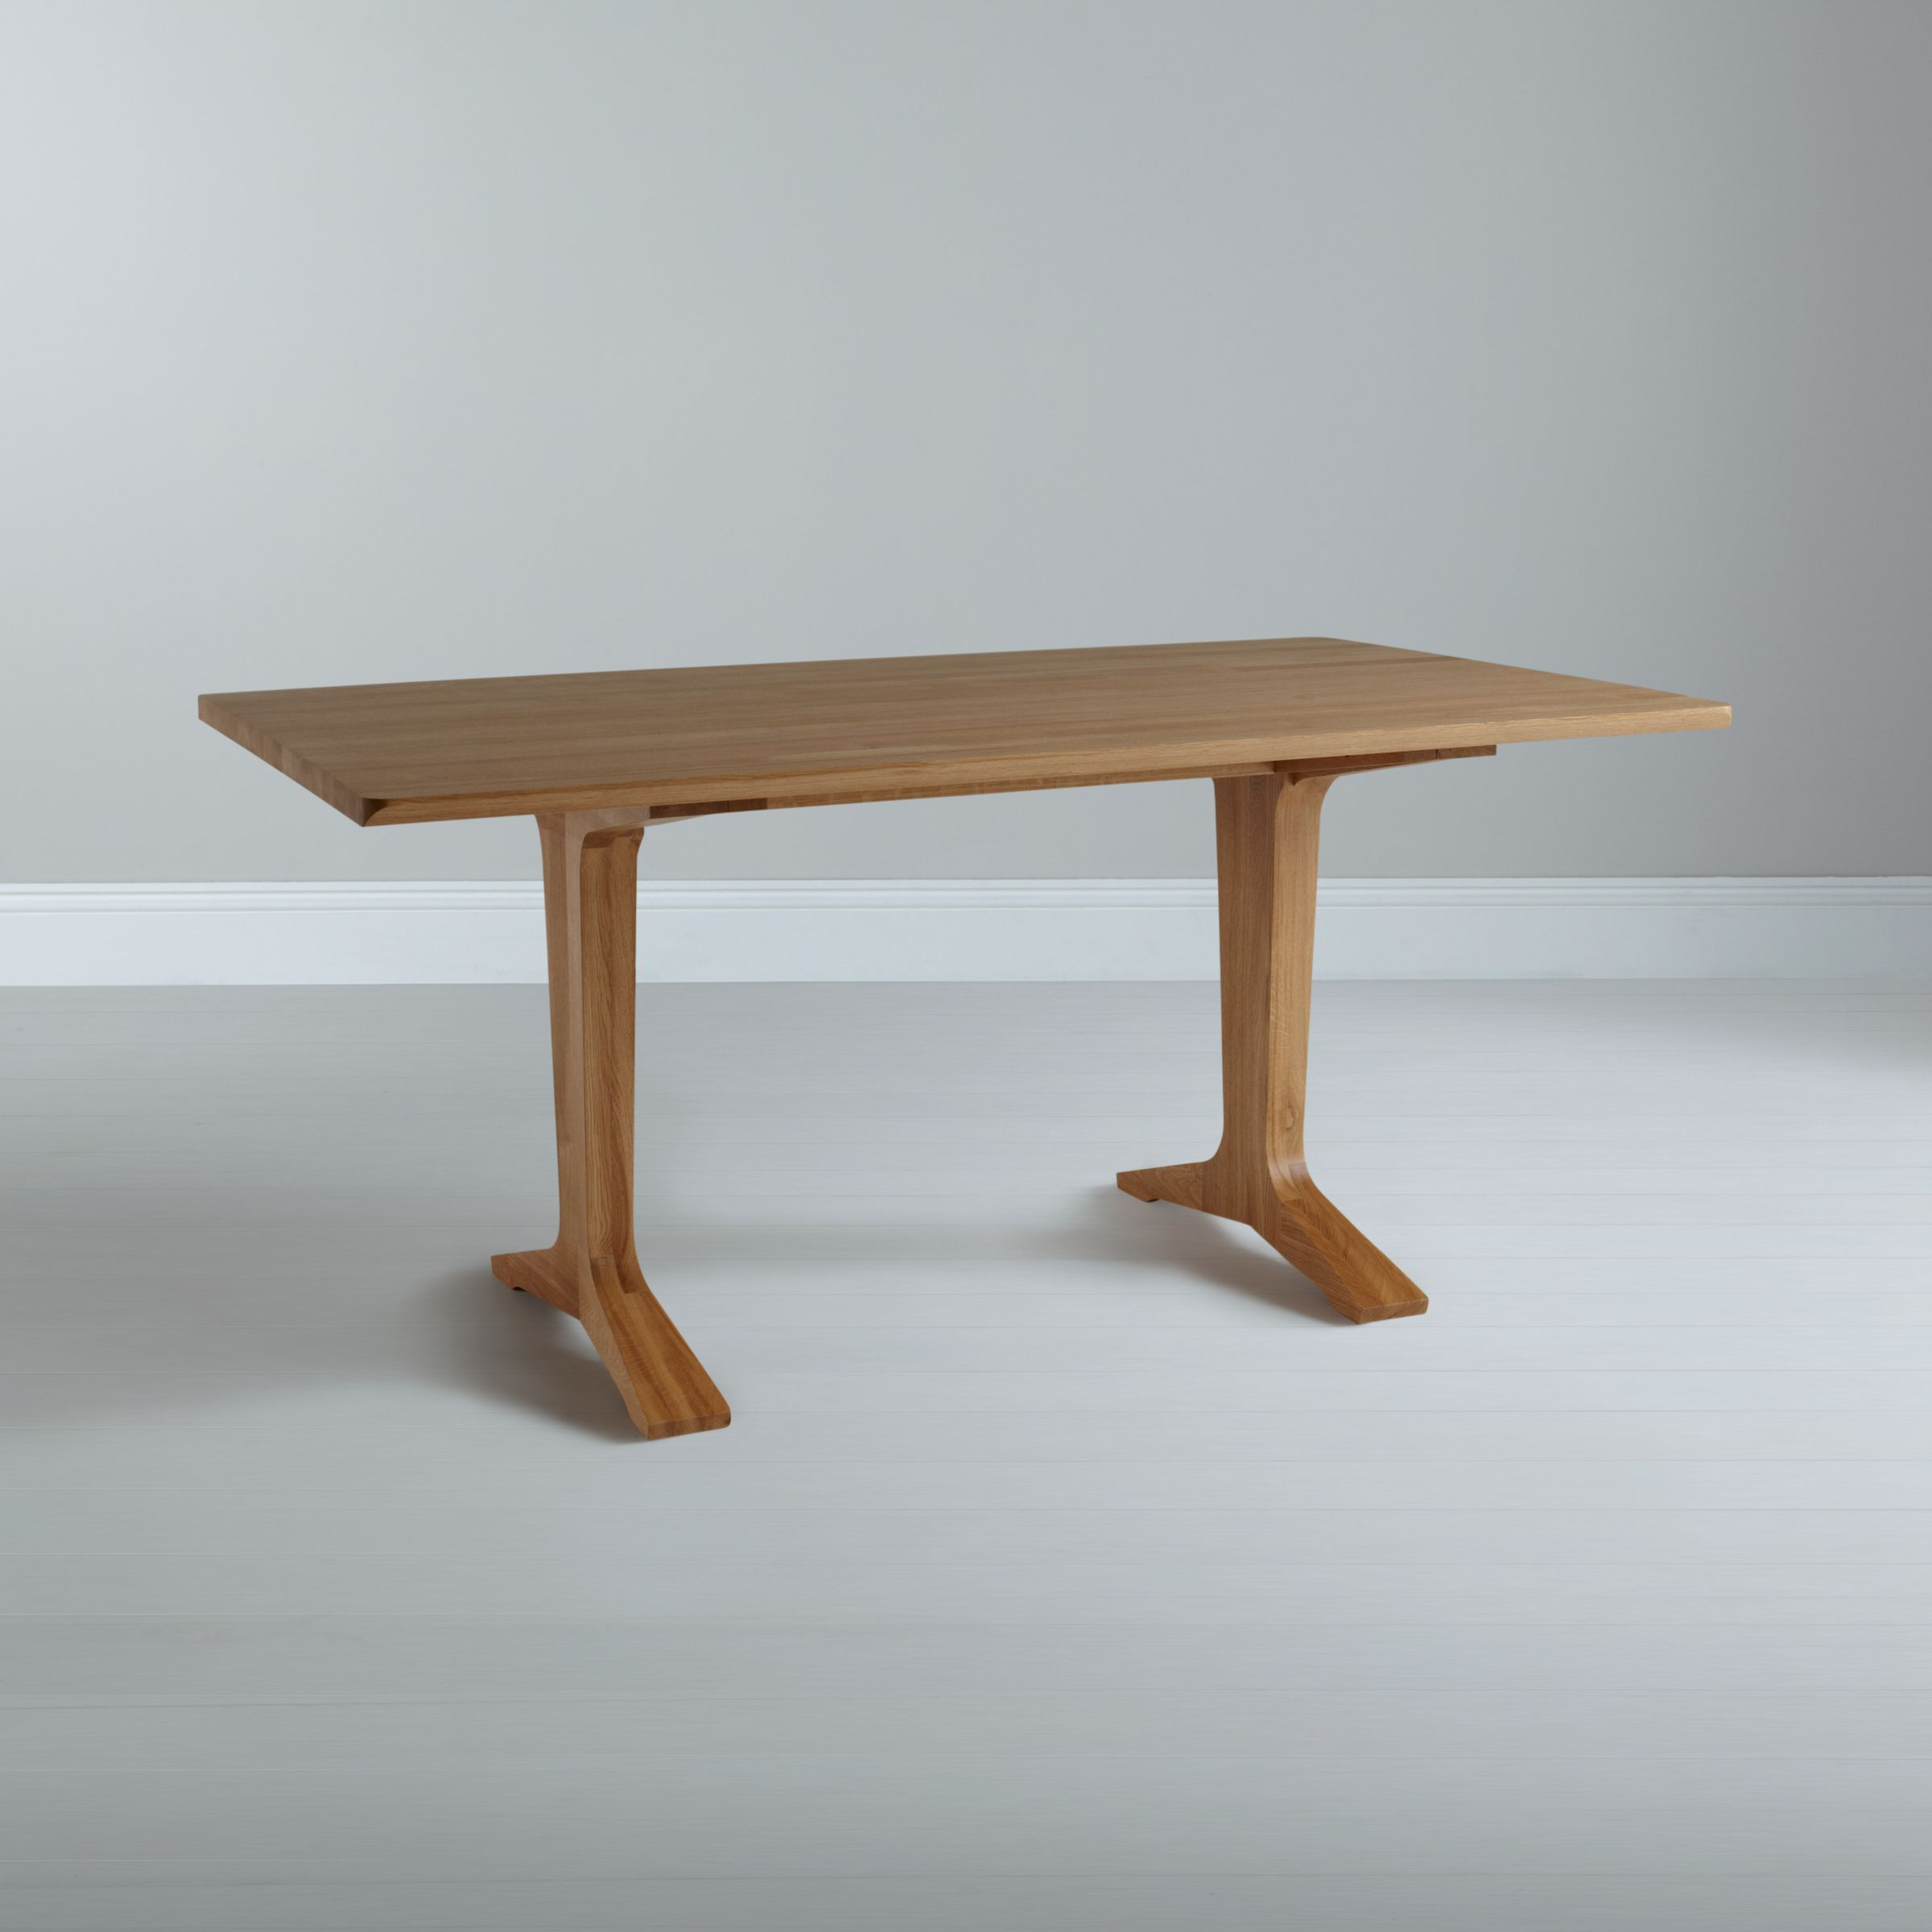 Matthew Hilton for Case Ballet Living and Dining Room Furniture